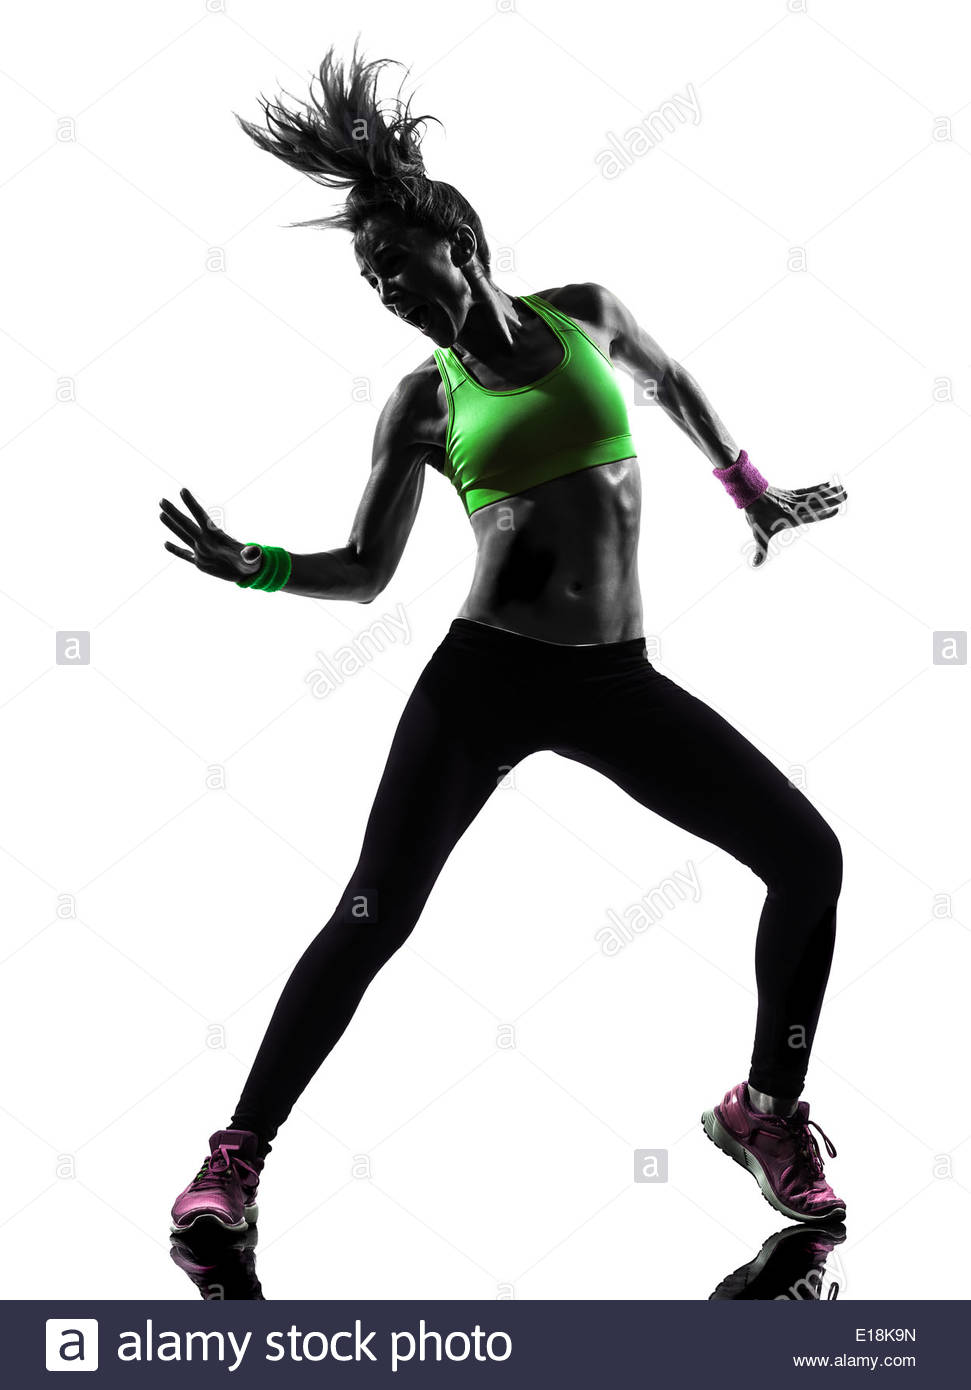 971x1390 One Woman Exercising Fitness Zumba Dancing In Silhouette On White